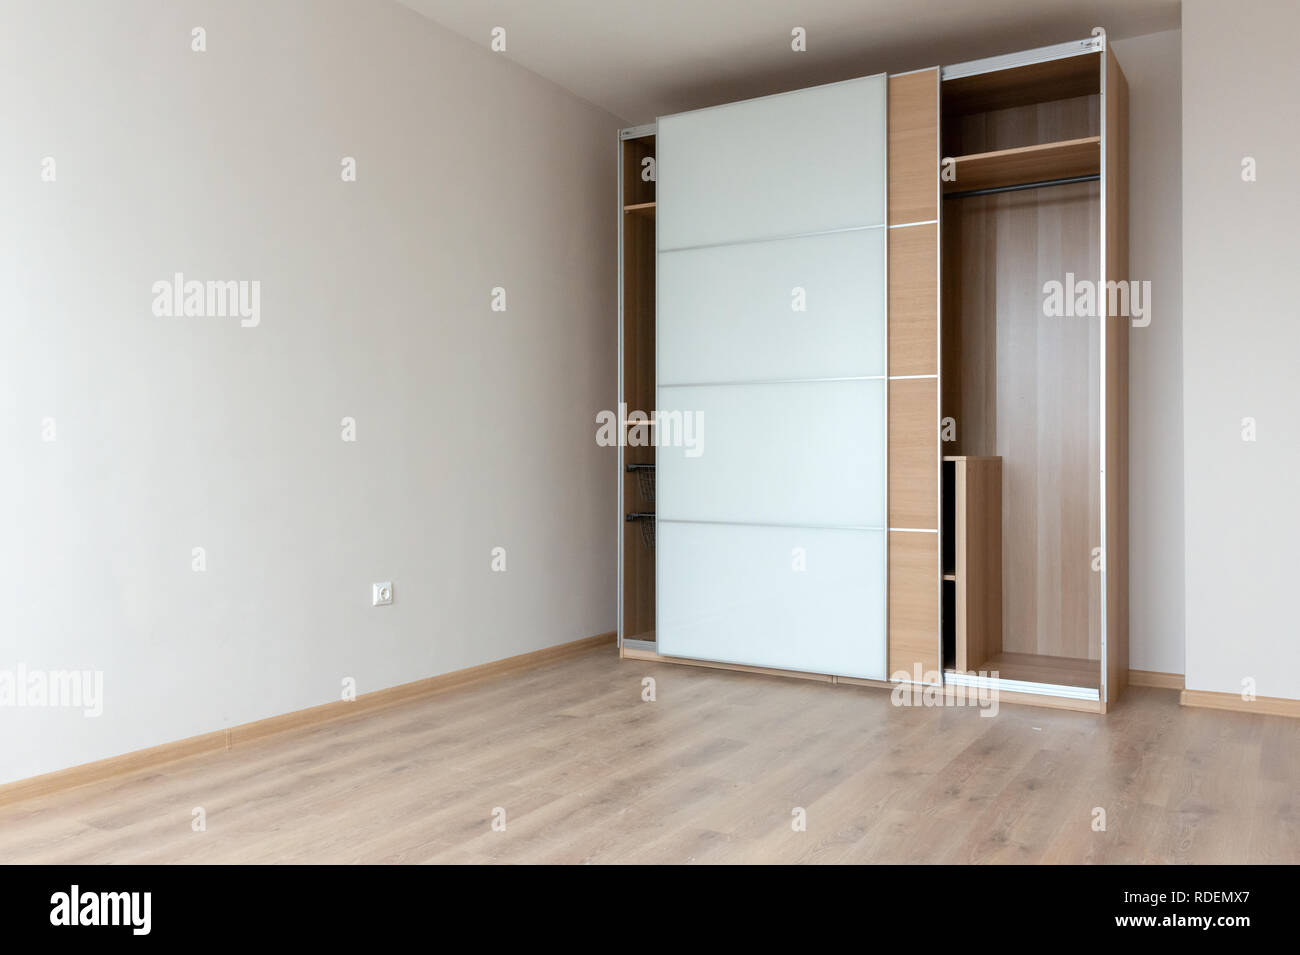 Duotone home interior with empty IKEA wardrobe in semi furnished bedroom. - Stock Image